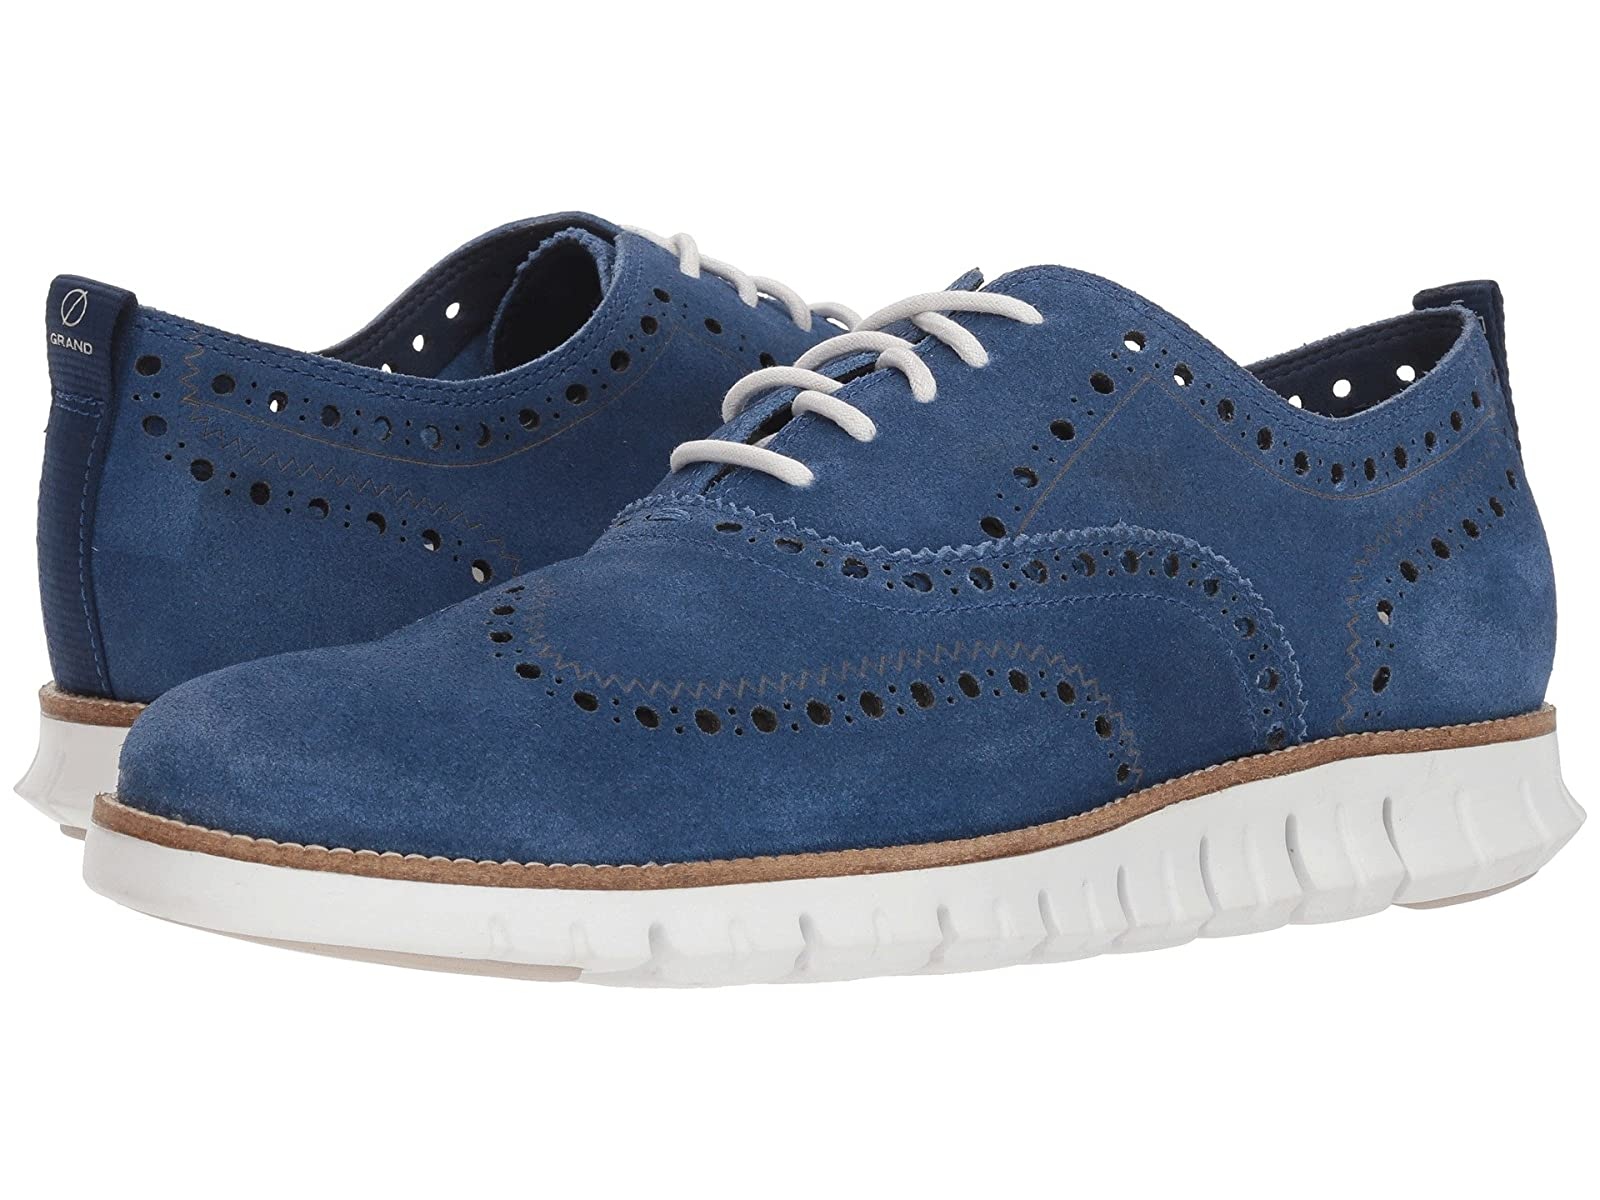 Cole Haan Zerogrand OxfordCheap and distinctive eye-catching shoes